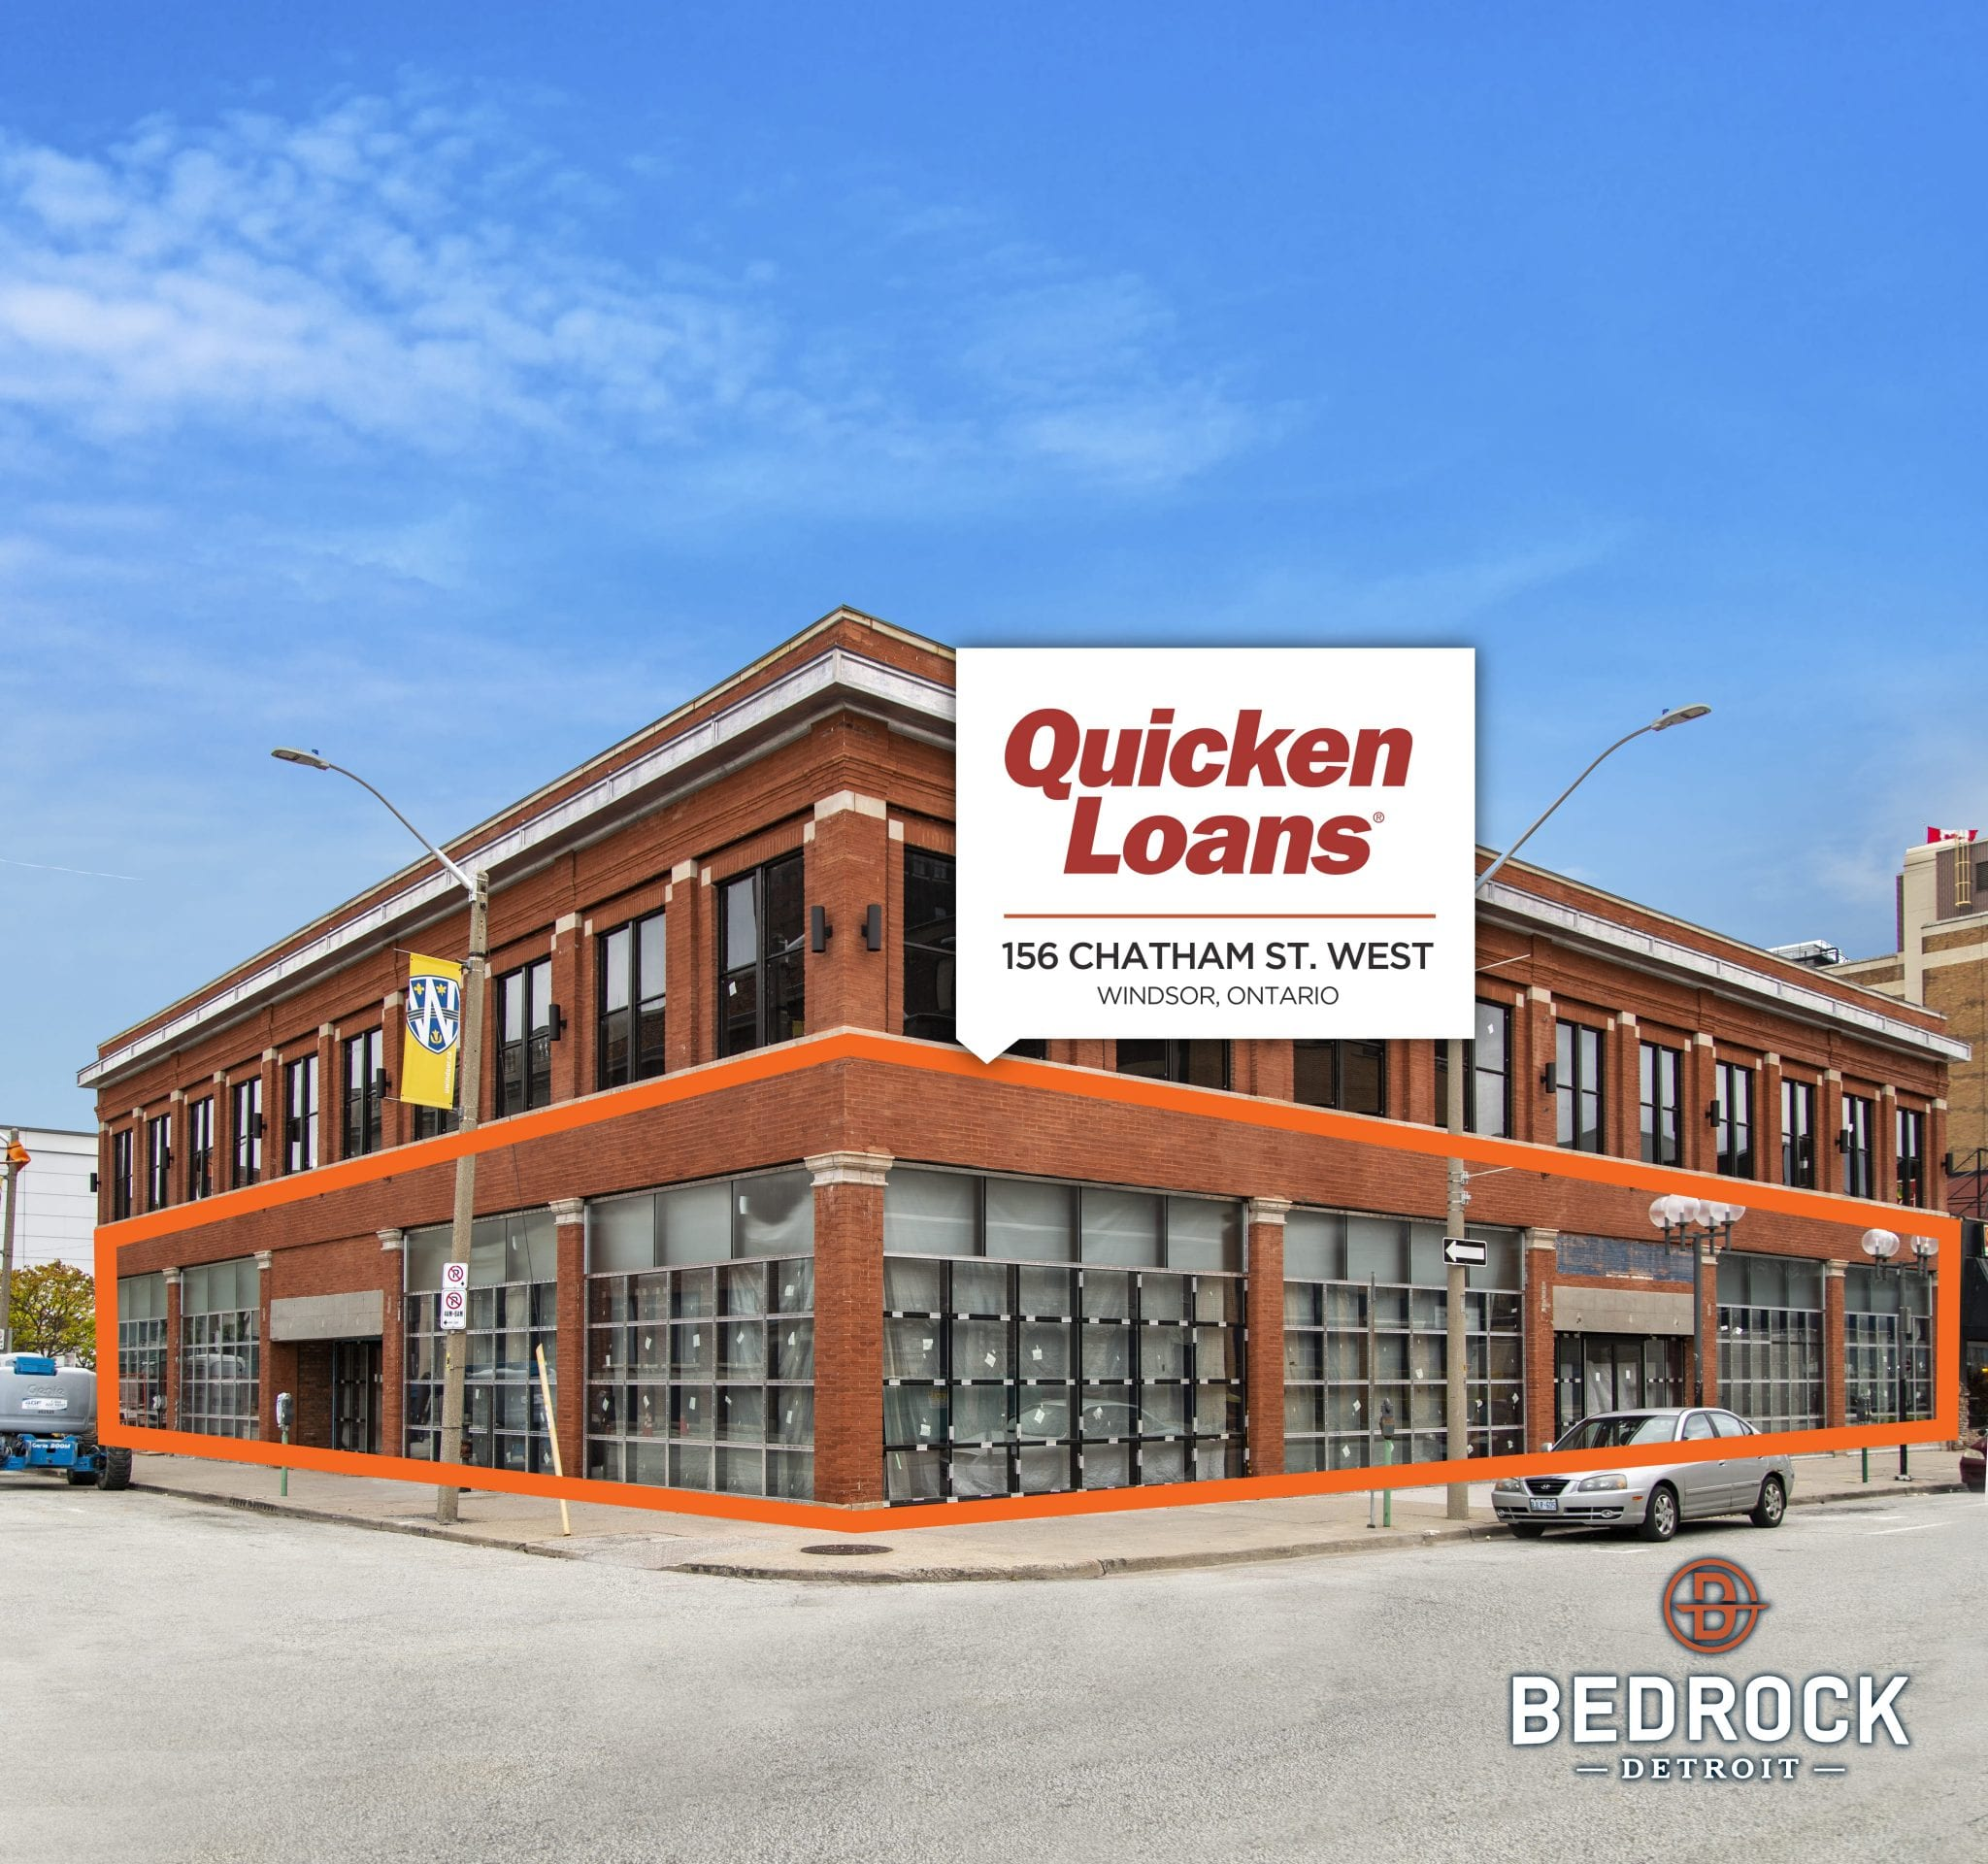 Business News: Quicken Loans and its Family of Companies To Open Technology Office Across River from Detroit Headquarters in Windsor Early in 2019